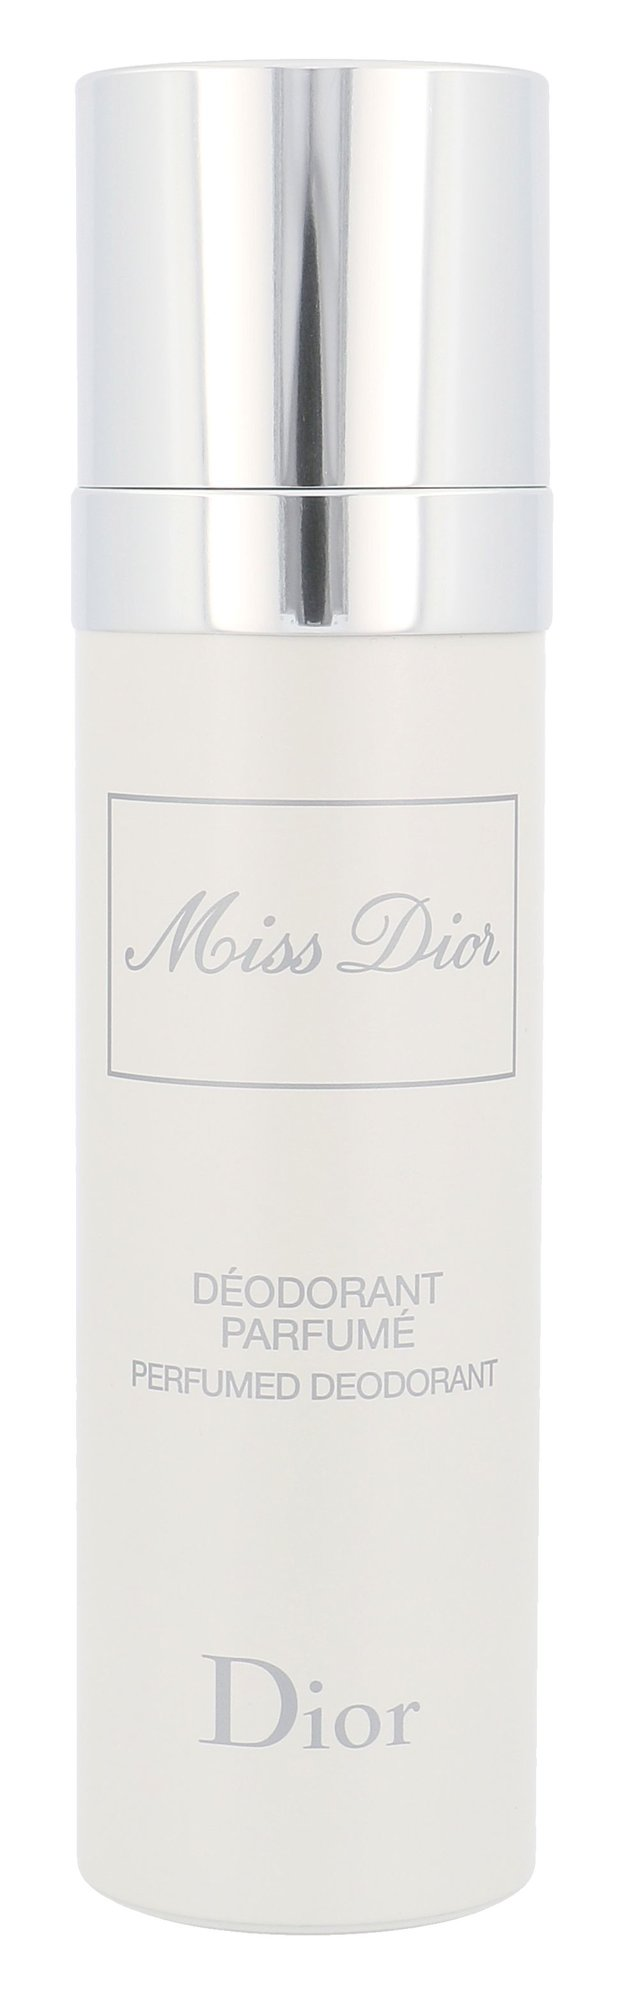 Christian Dior Miss Dior Deodorant 100ml